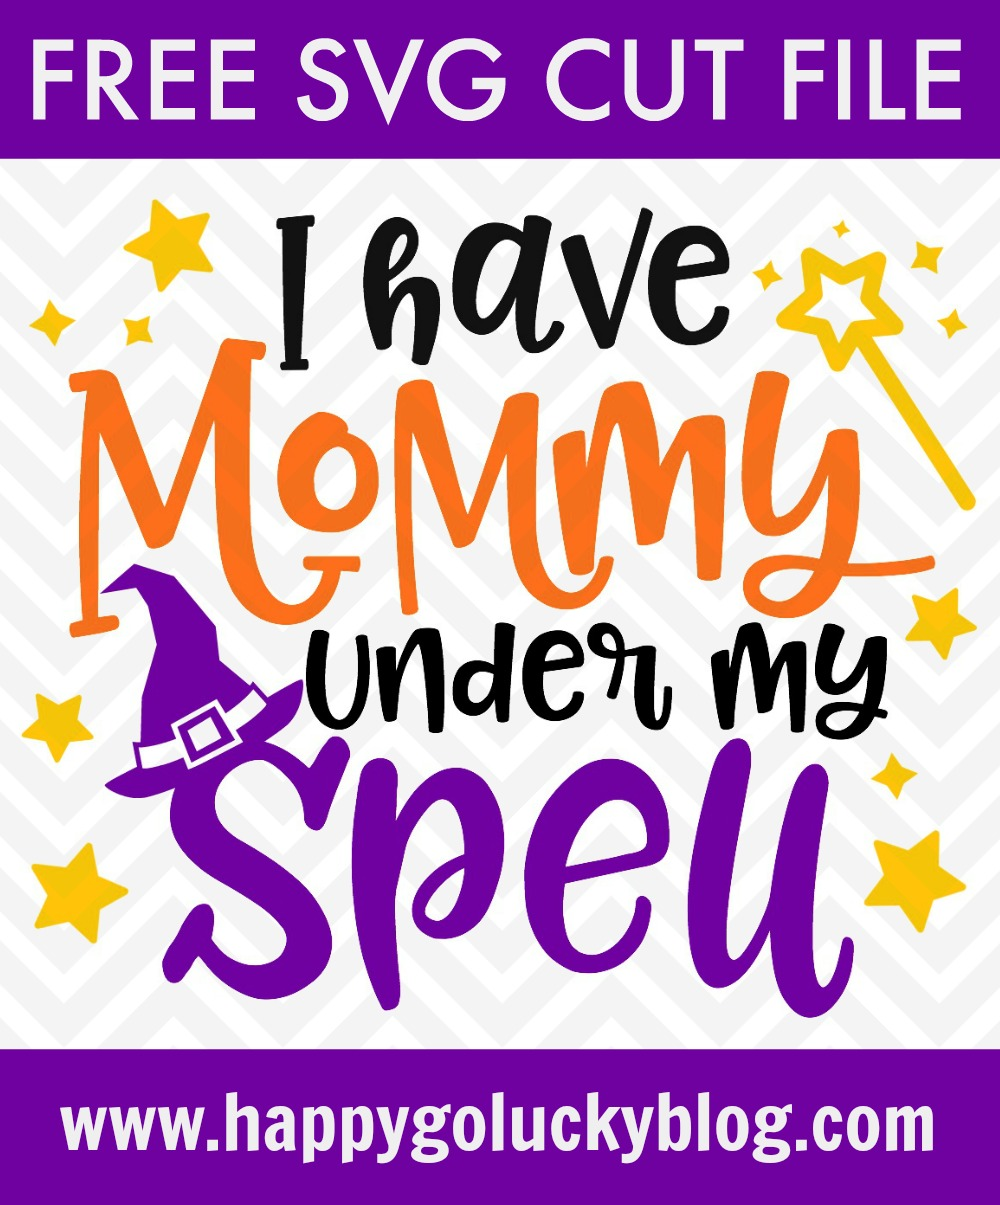 I have mommy under my spell SVG Cut File